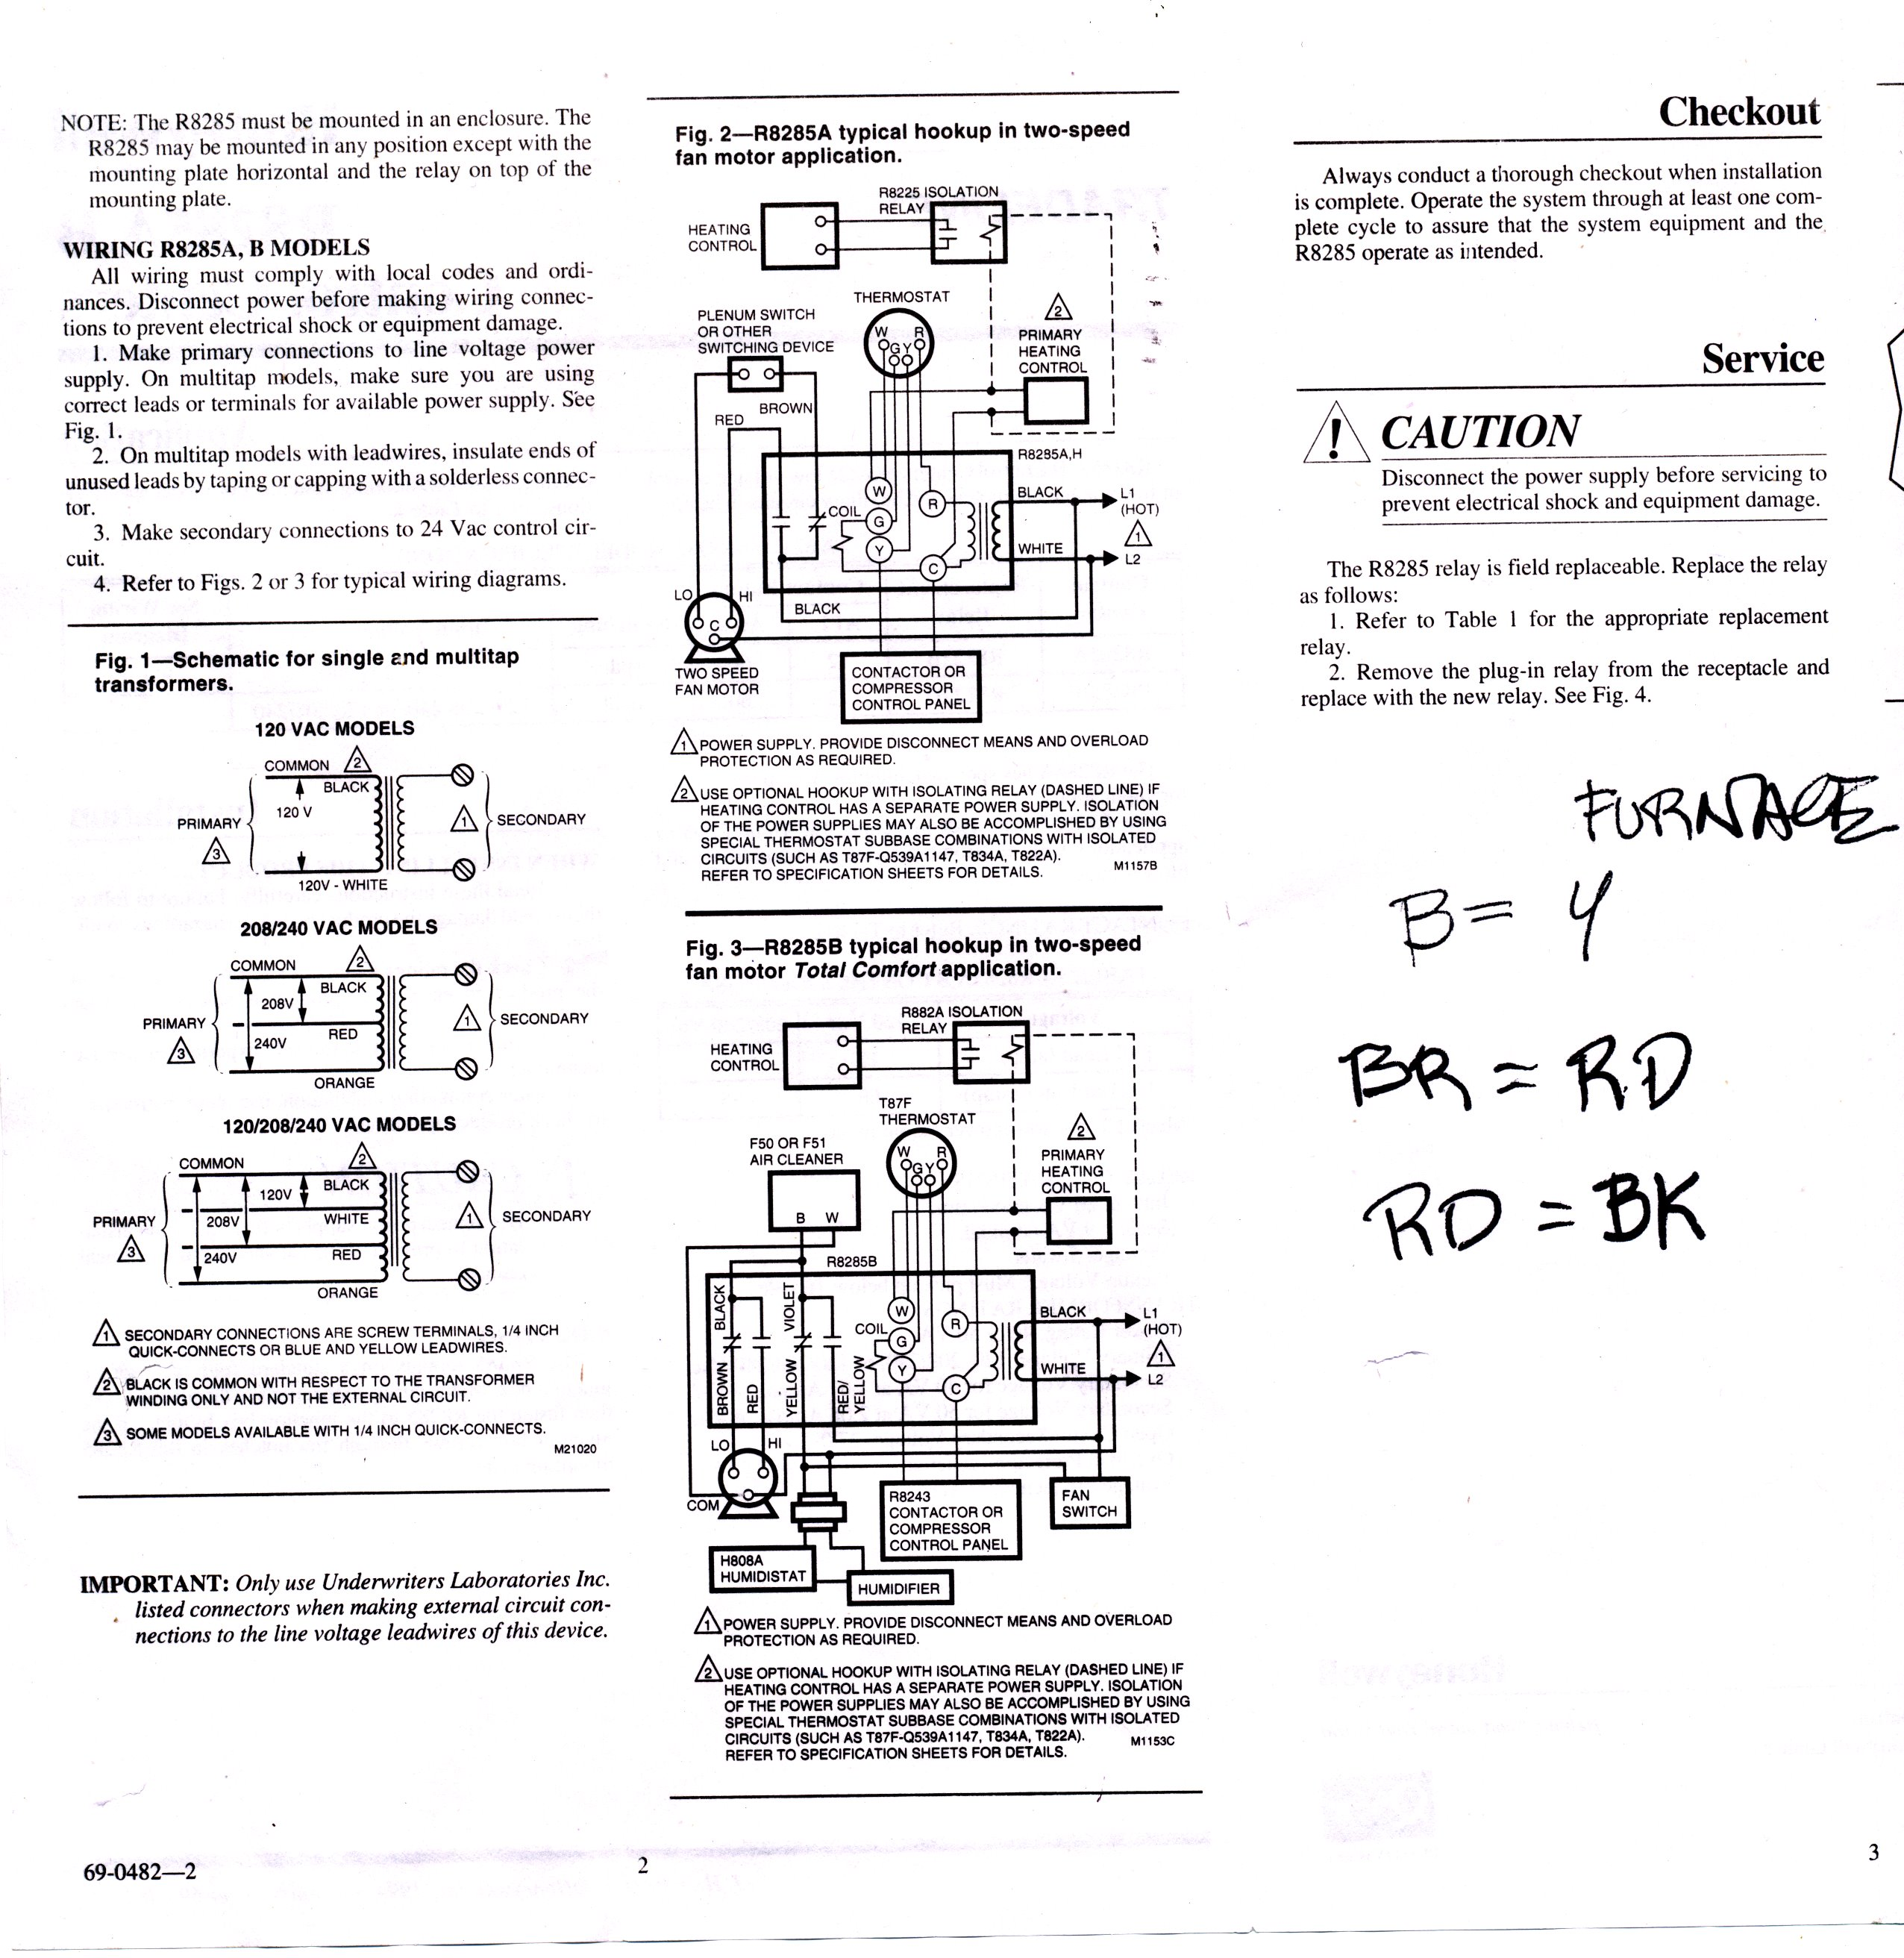 Furnace Limit Switch Wiring Diagram Great Design Of Intertherm Oil Control Honeywell Fan 41 Old Gas Mobile Home